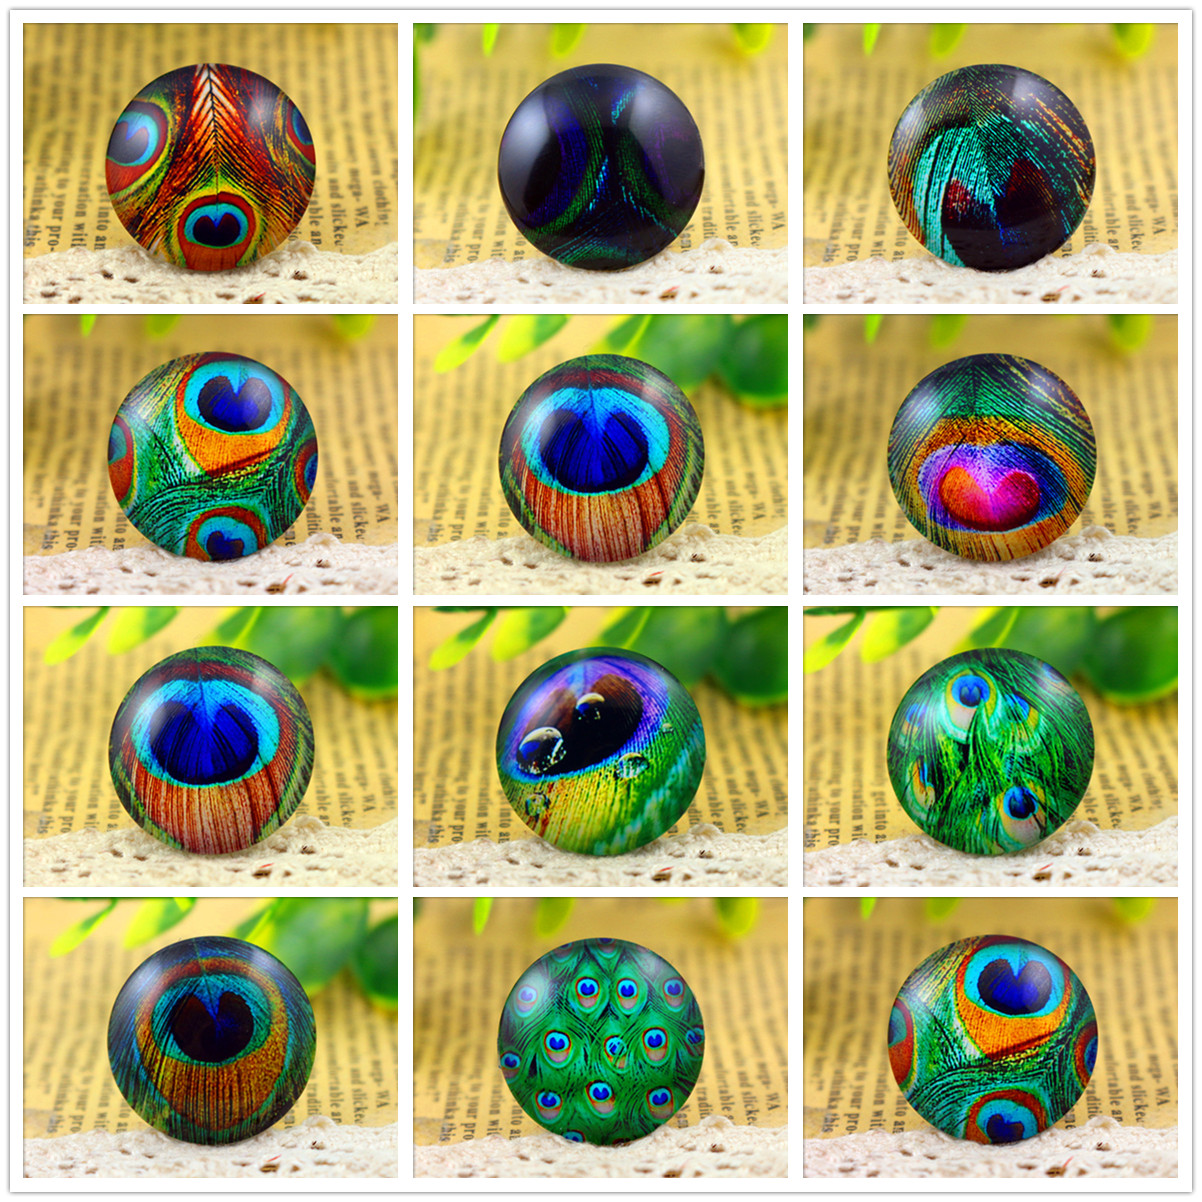 Hot Sale 5pcs/Lot 25mm Handmade Photo Glass Cabochons (Green Series)